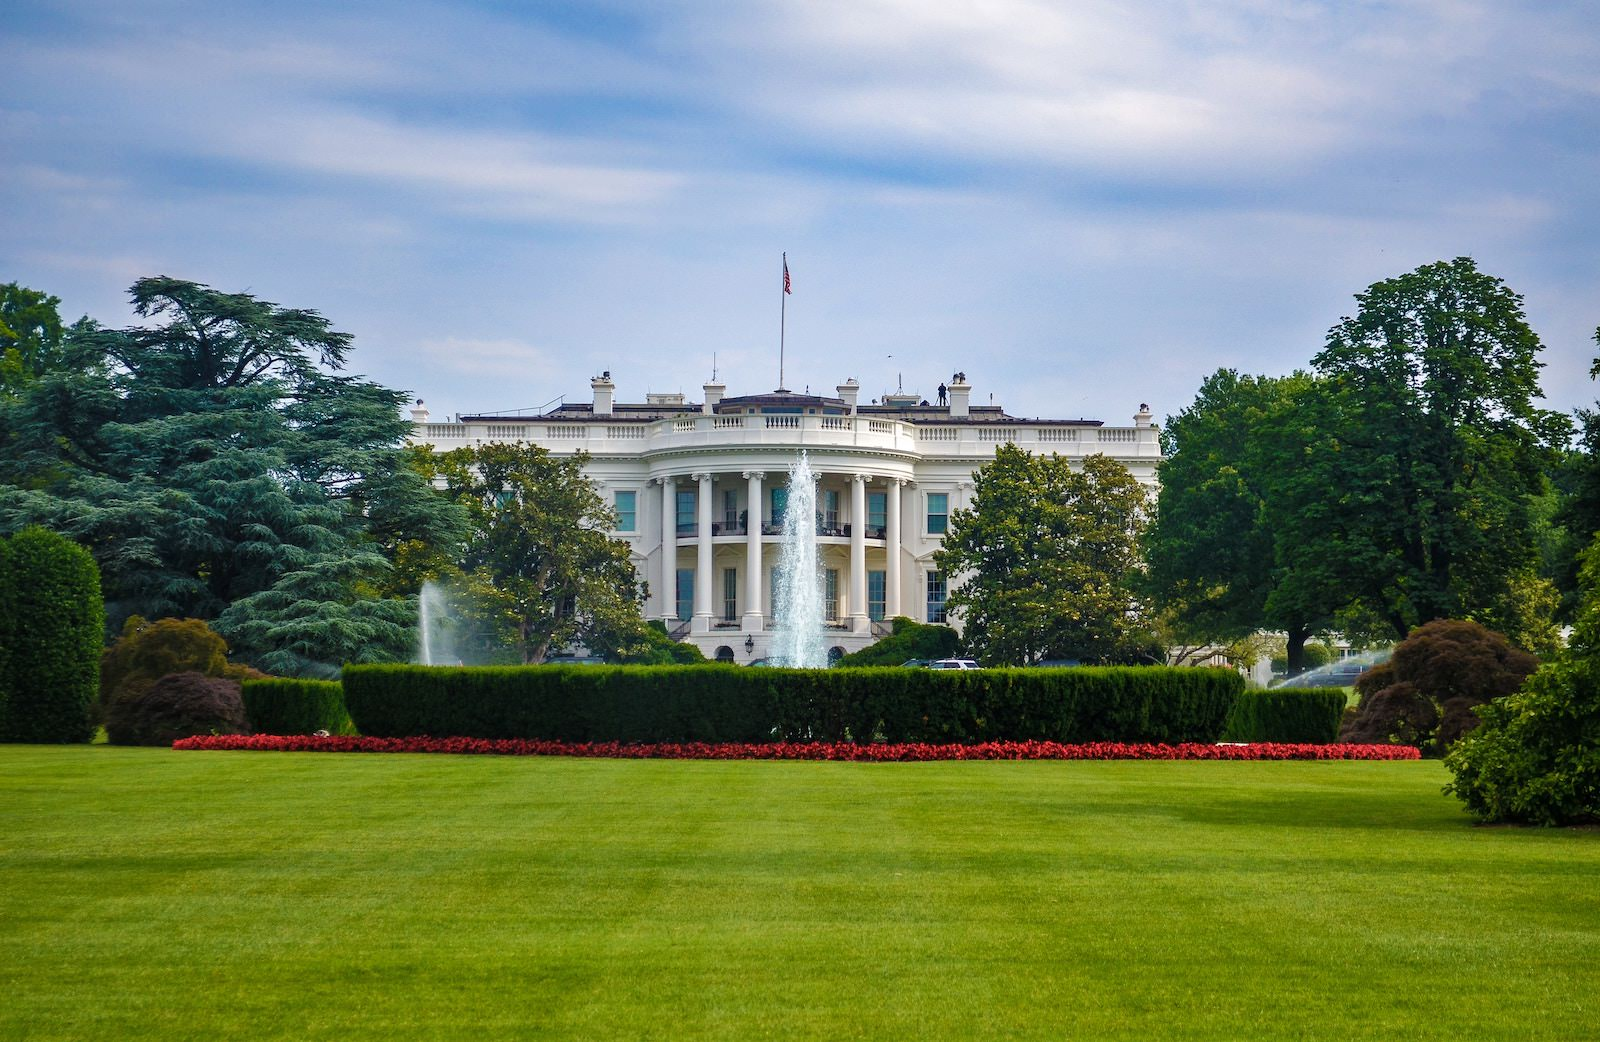 David everett strickler 196946 unsplash the white house